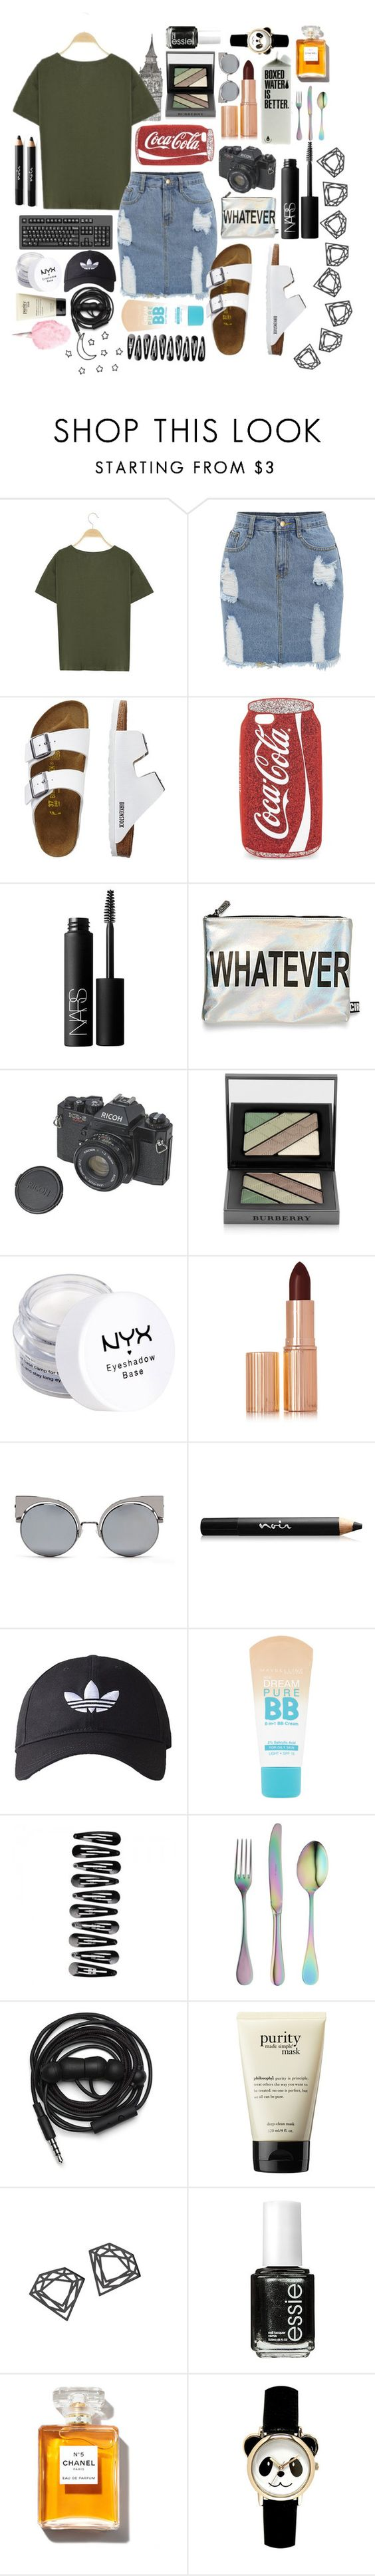 """Untitled #76"" by dancewithshira ❤ liked on Polyvore featuring TravelSmith, Skinnydip, NARS Cosmetics, Circus By Sam Edelman, Burberry, NYX, Charlotte Tilbury, Fendi, Noir Cosmetics and adidas Originals"